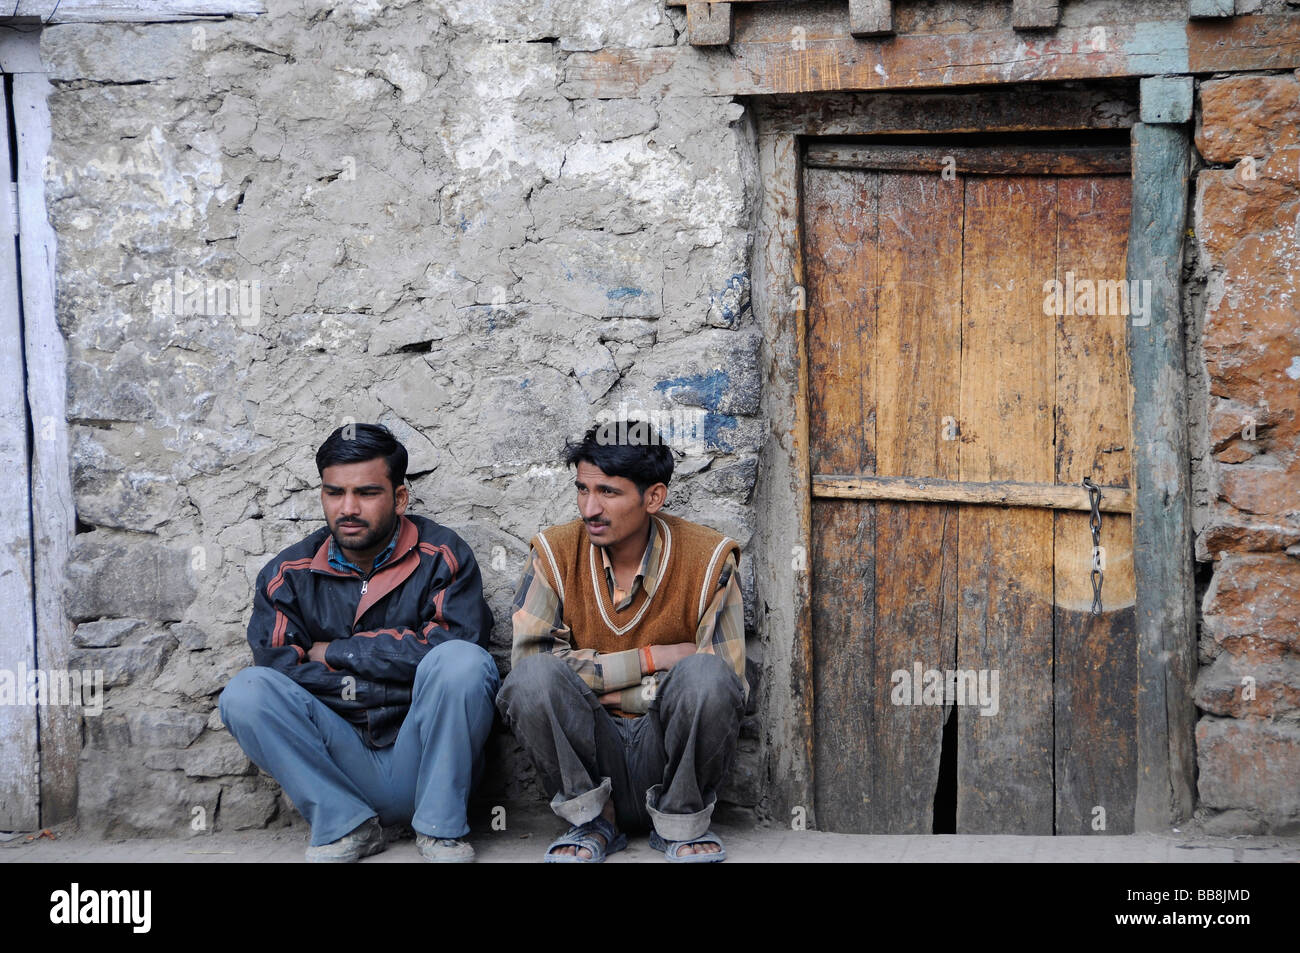 Squatting Hindi men, immigrant workers in front of their house in Leh, Ladakh, North India, Himalayas, Asia - Stock Image